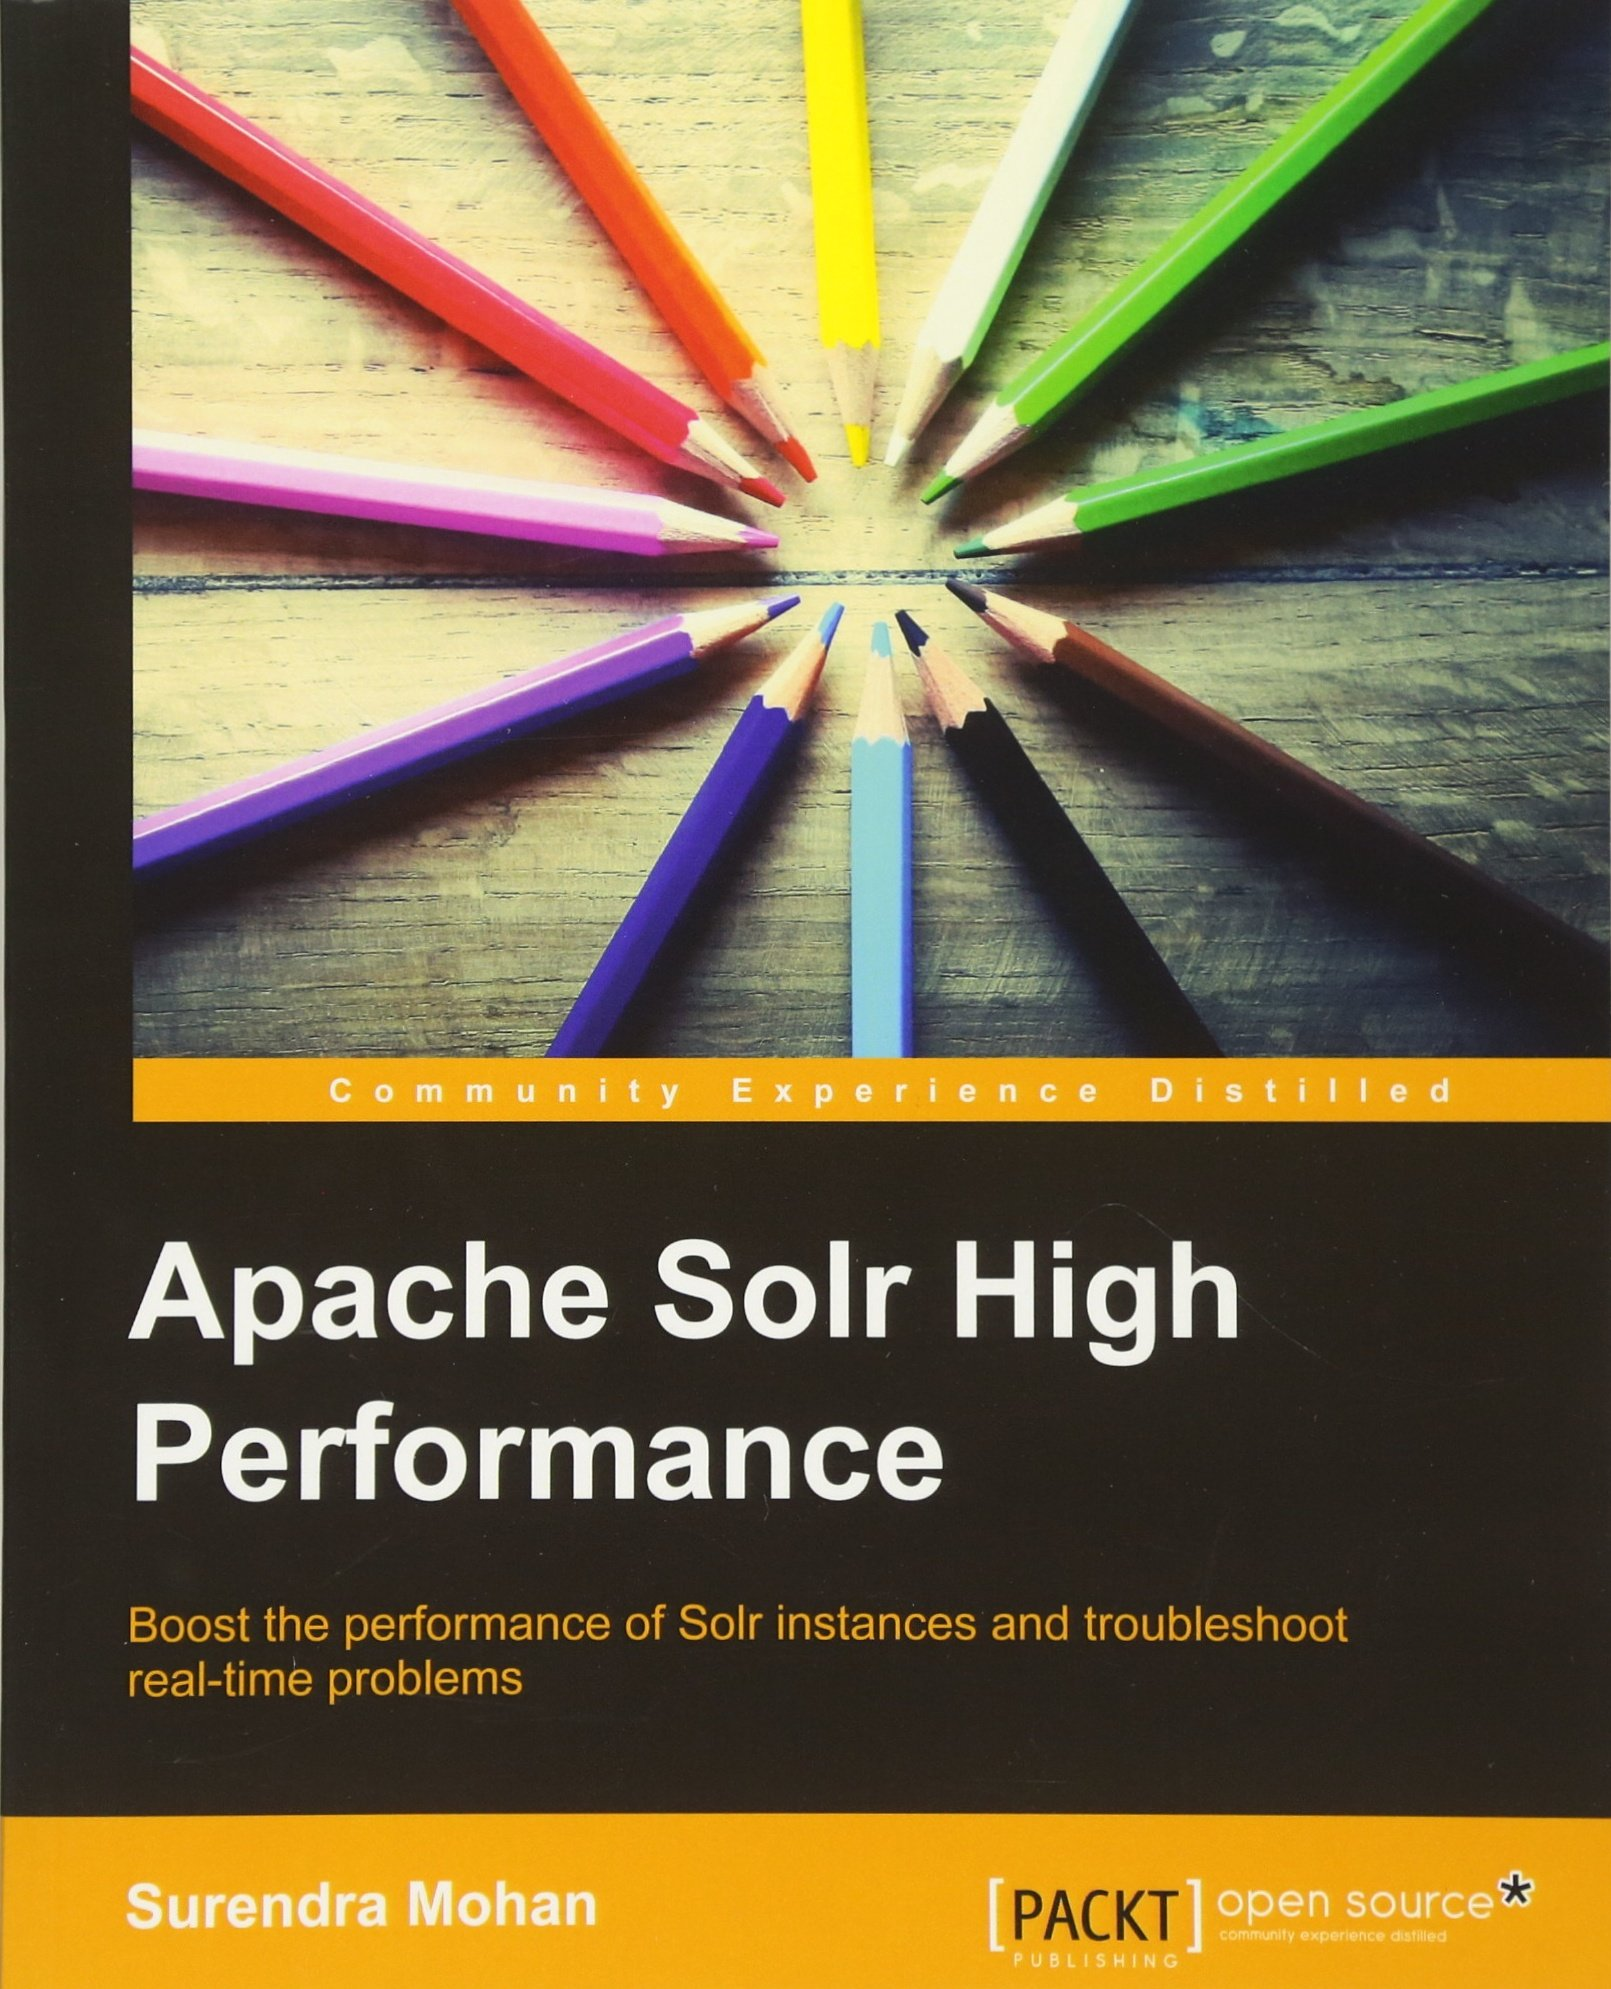 Amazon.com: Apache Solr High Performance (9781782164821): Surendra Mohan:  Books